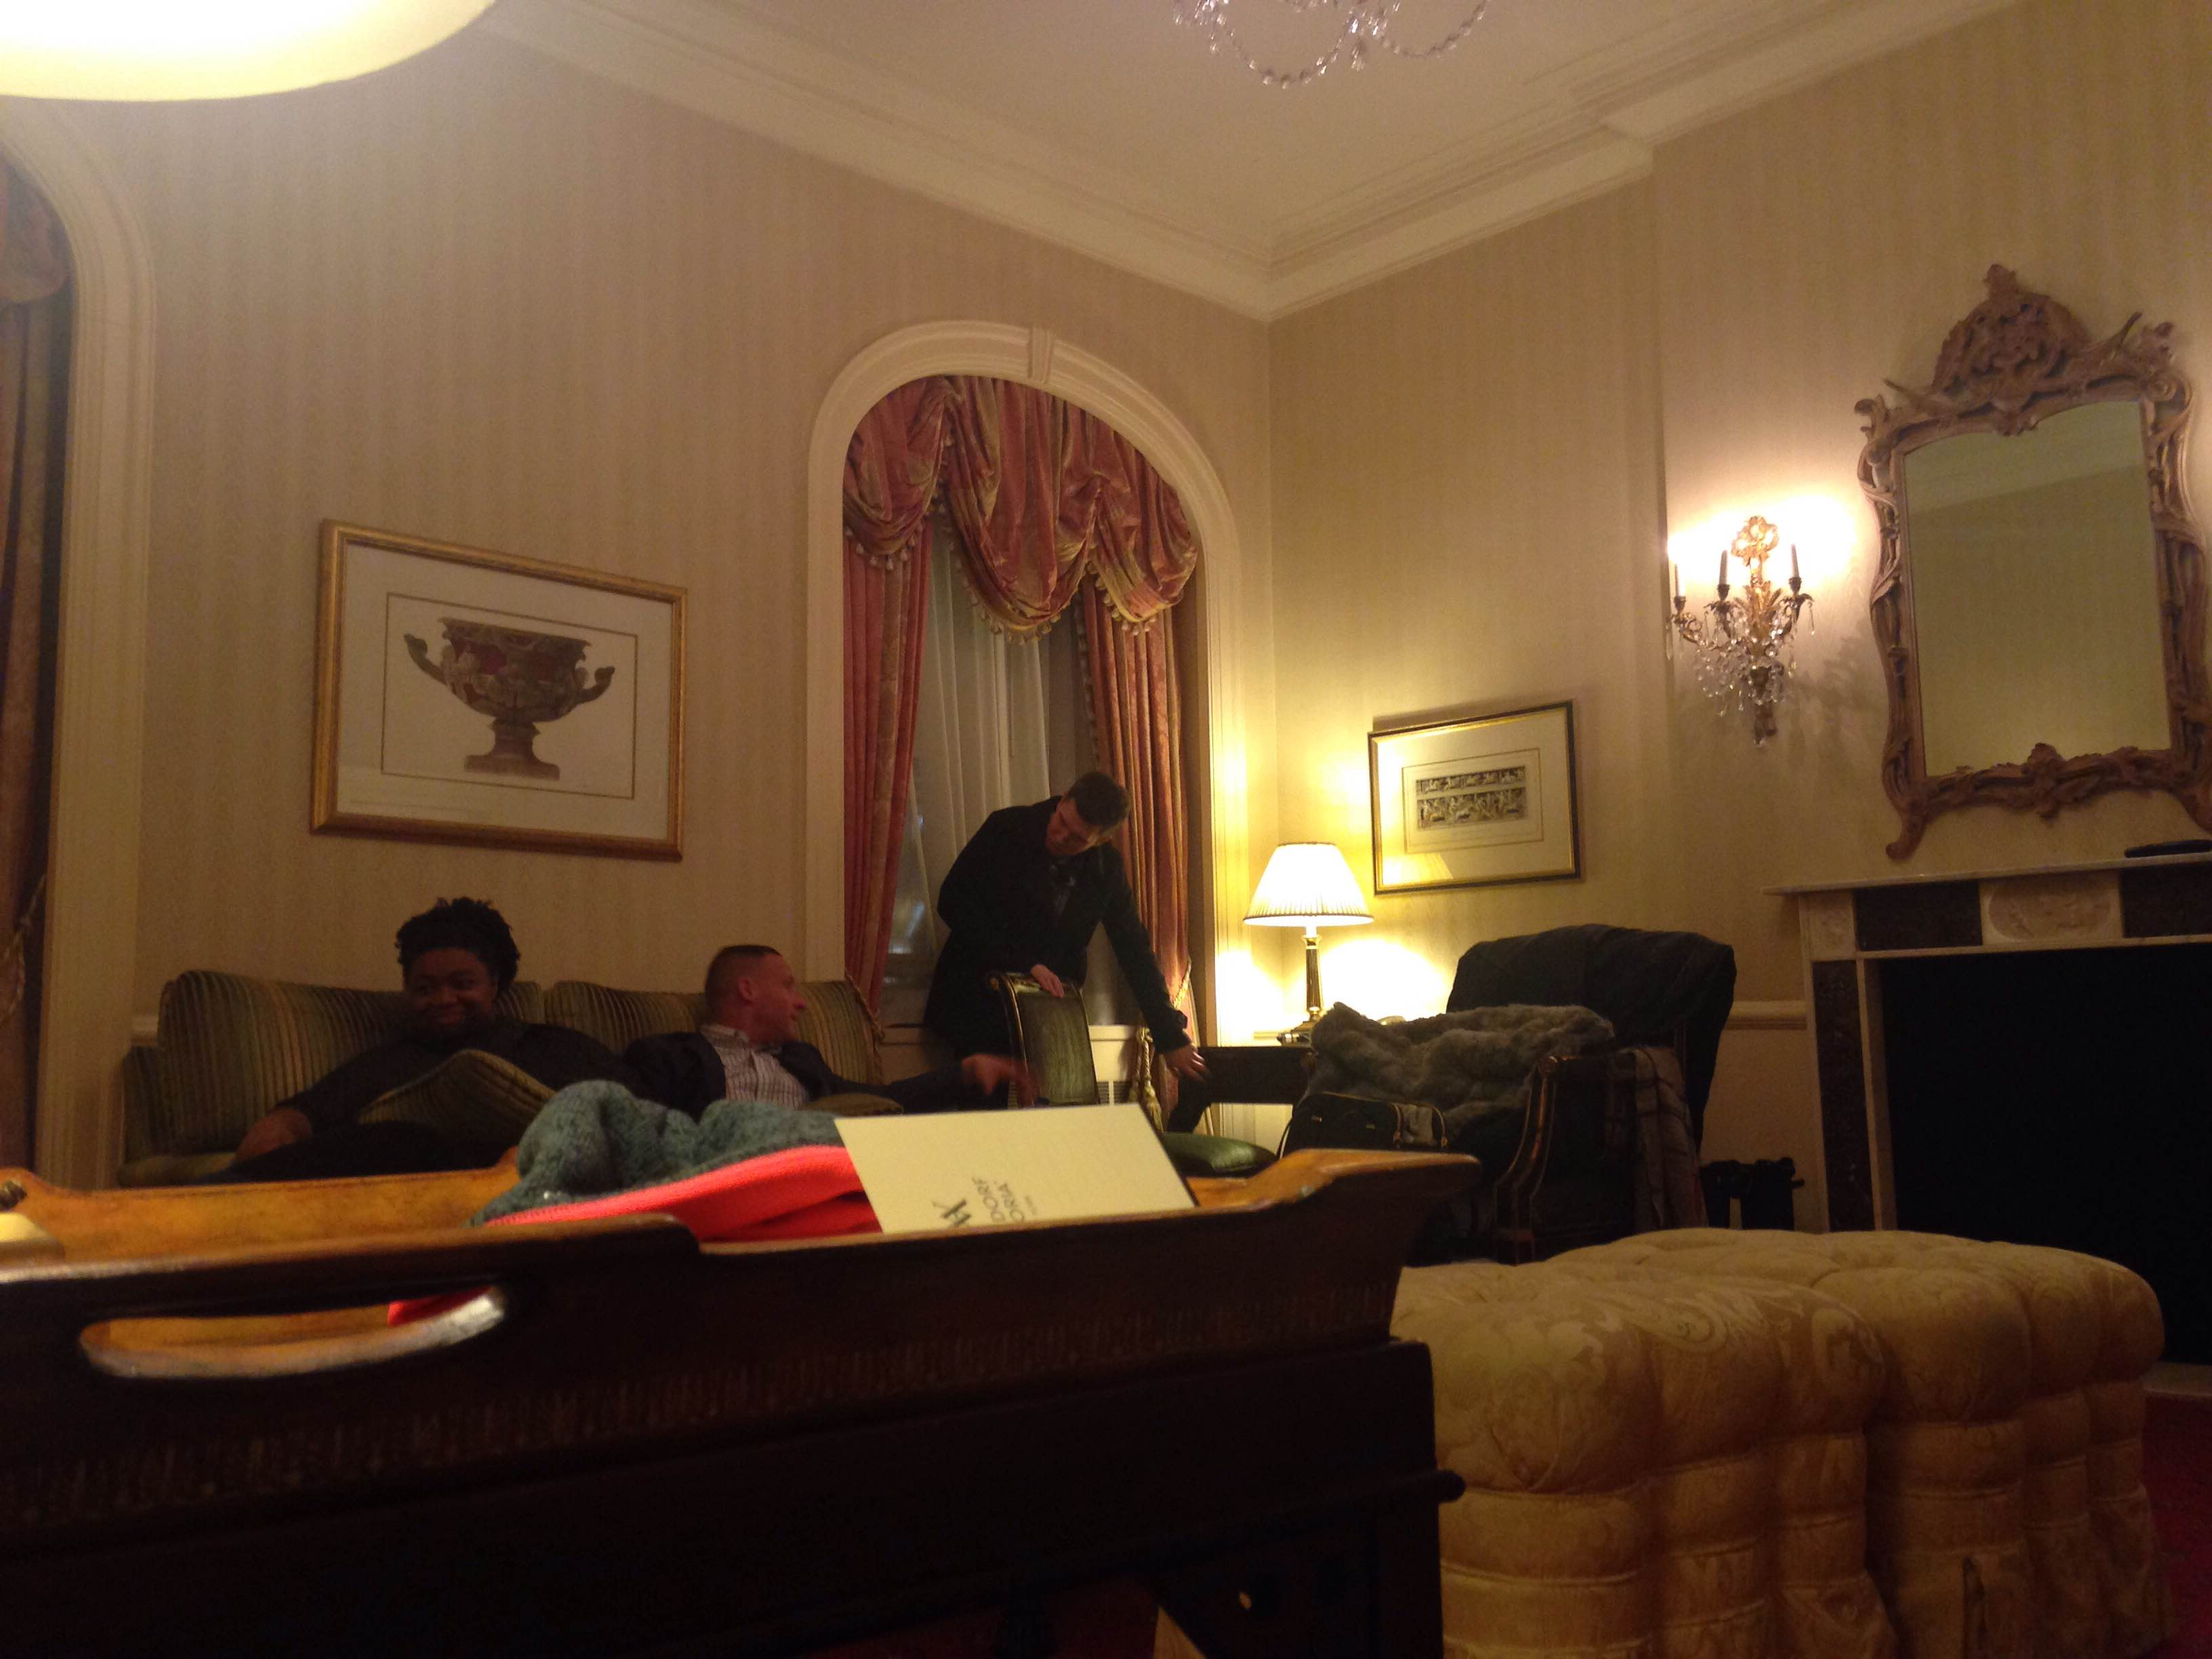 Part of the amazing suite at the Waldorf Astoria!